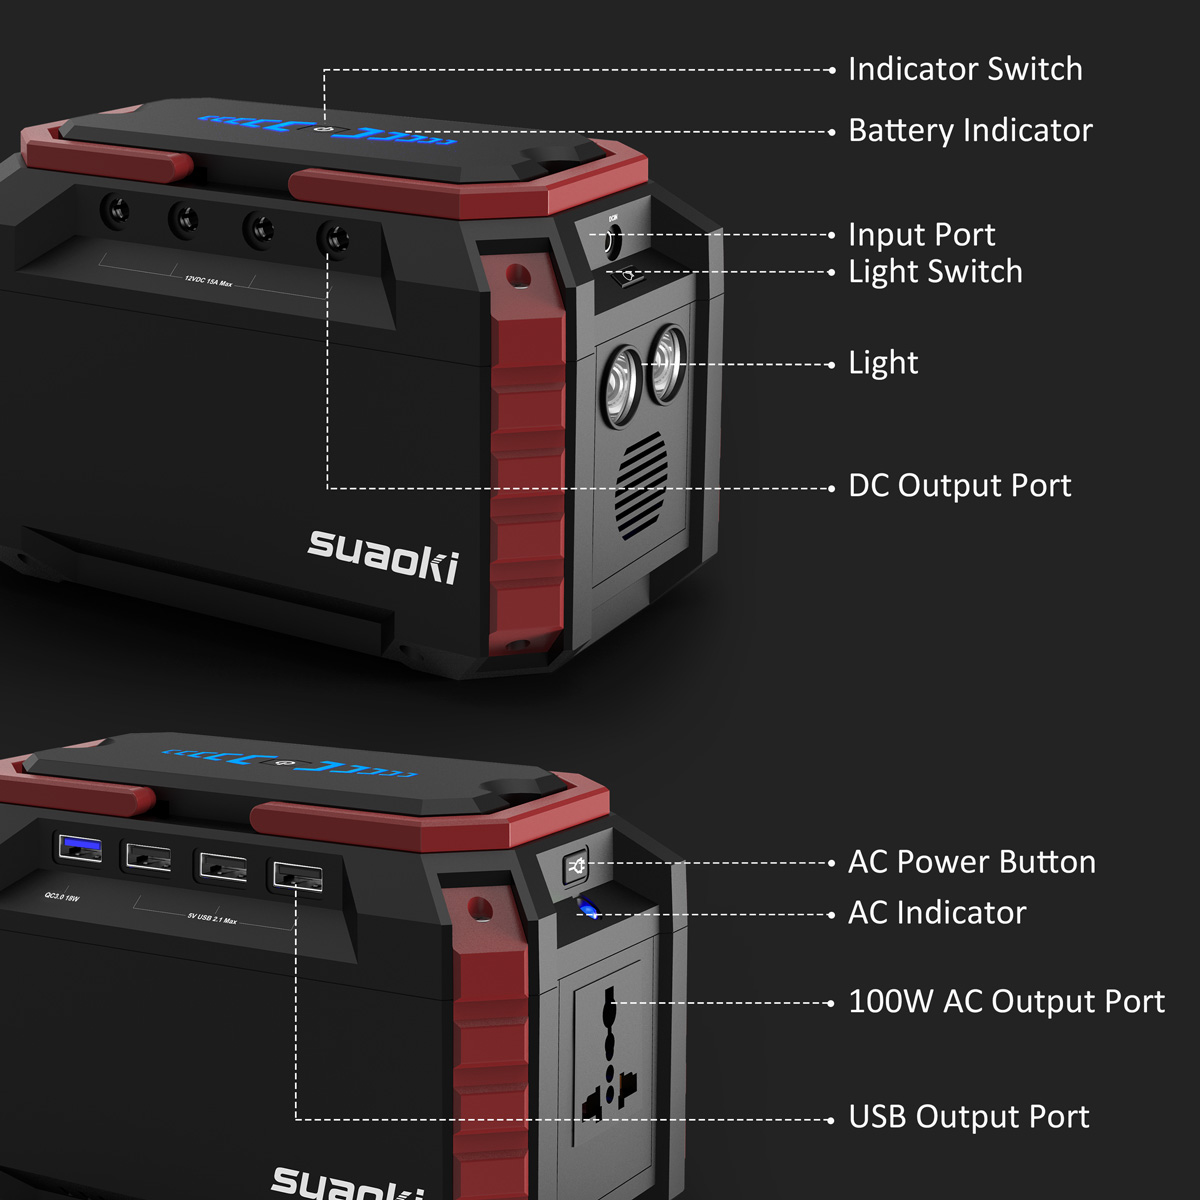 Suaoki Portable 150wh Solar Power Inverter Generator Supply Energy Battery Via The Mini Usb Port On Charging Circuit Or 1 X Mc4 Cable To Charge S270 Panels Ac Adapter Wall Outlet Dc Female Cigarette Lighter In Car